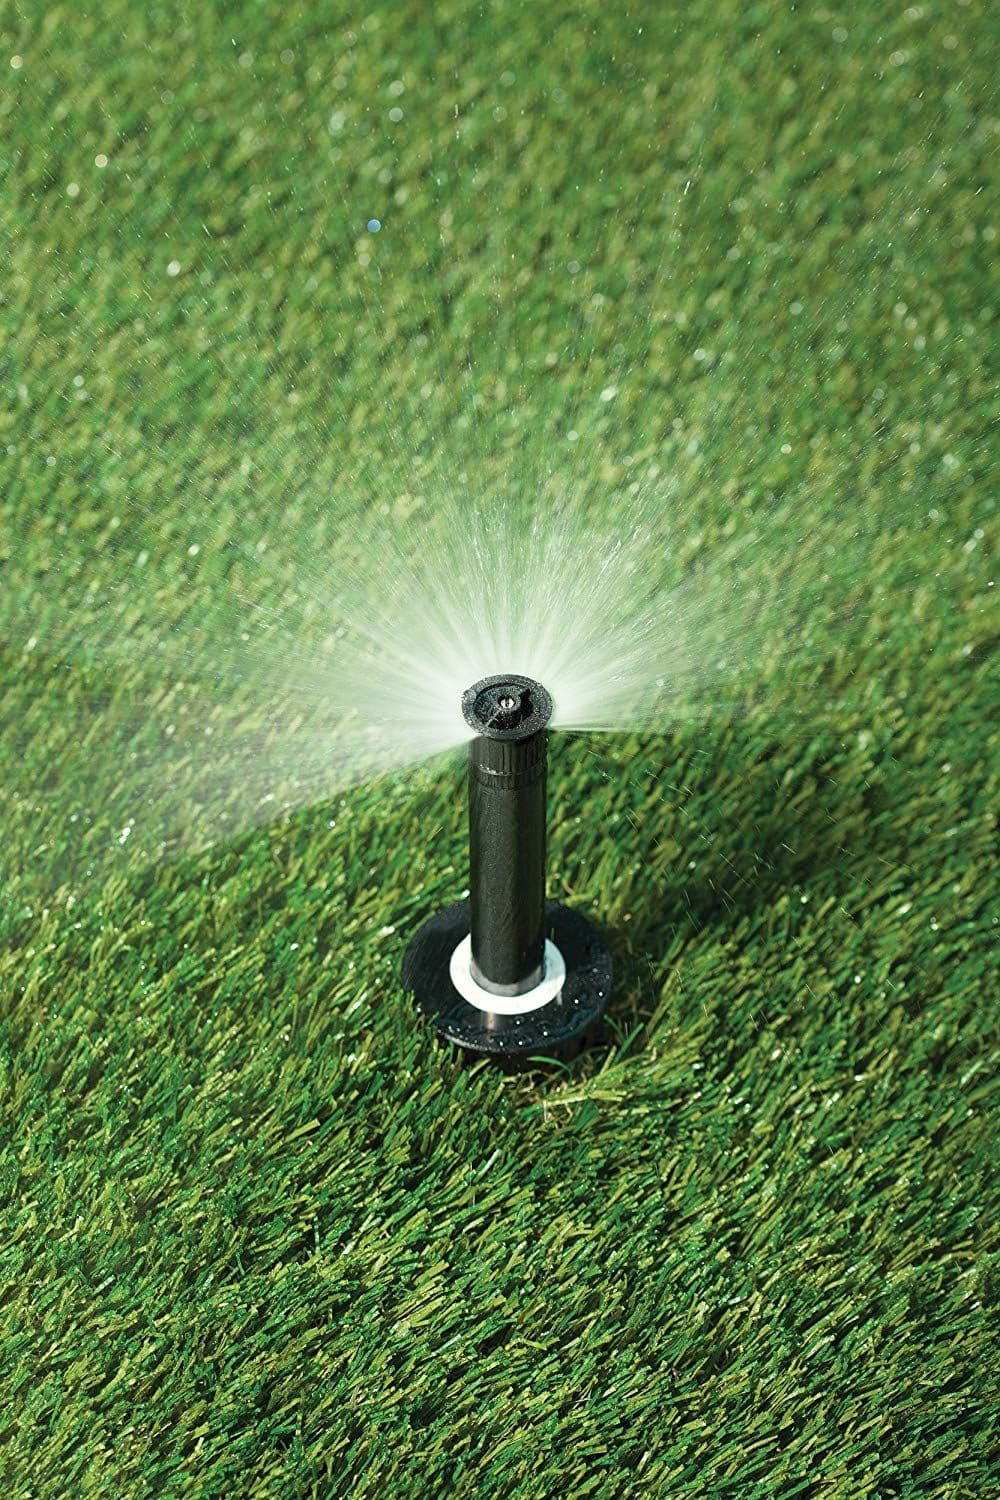 How To Adjust Sprinkler Heads Easy Step By Step Guide